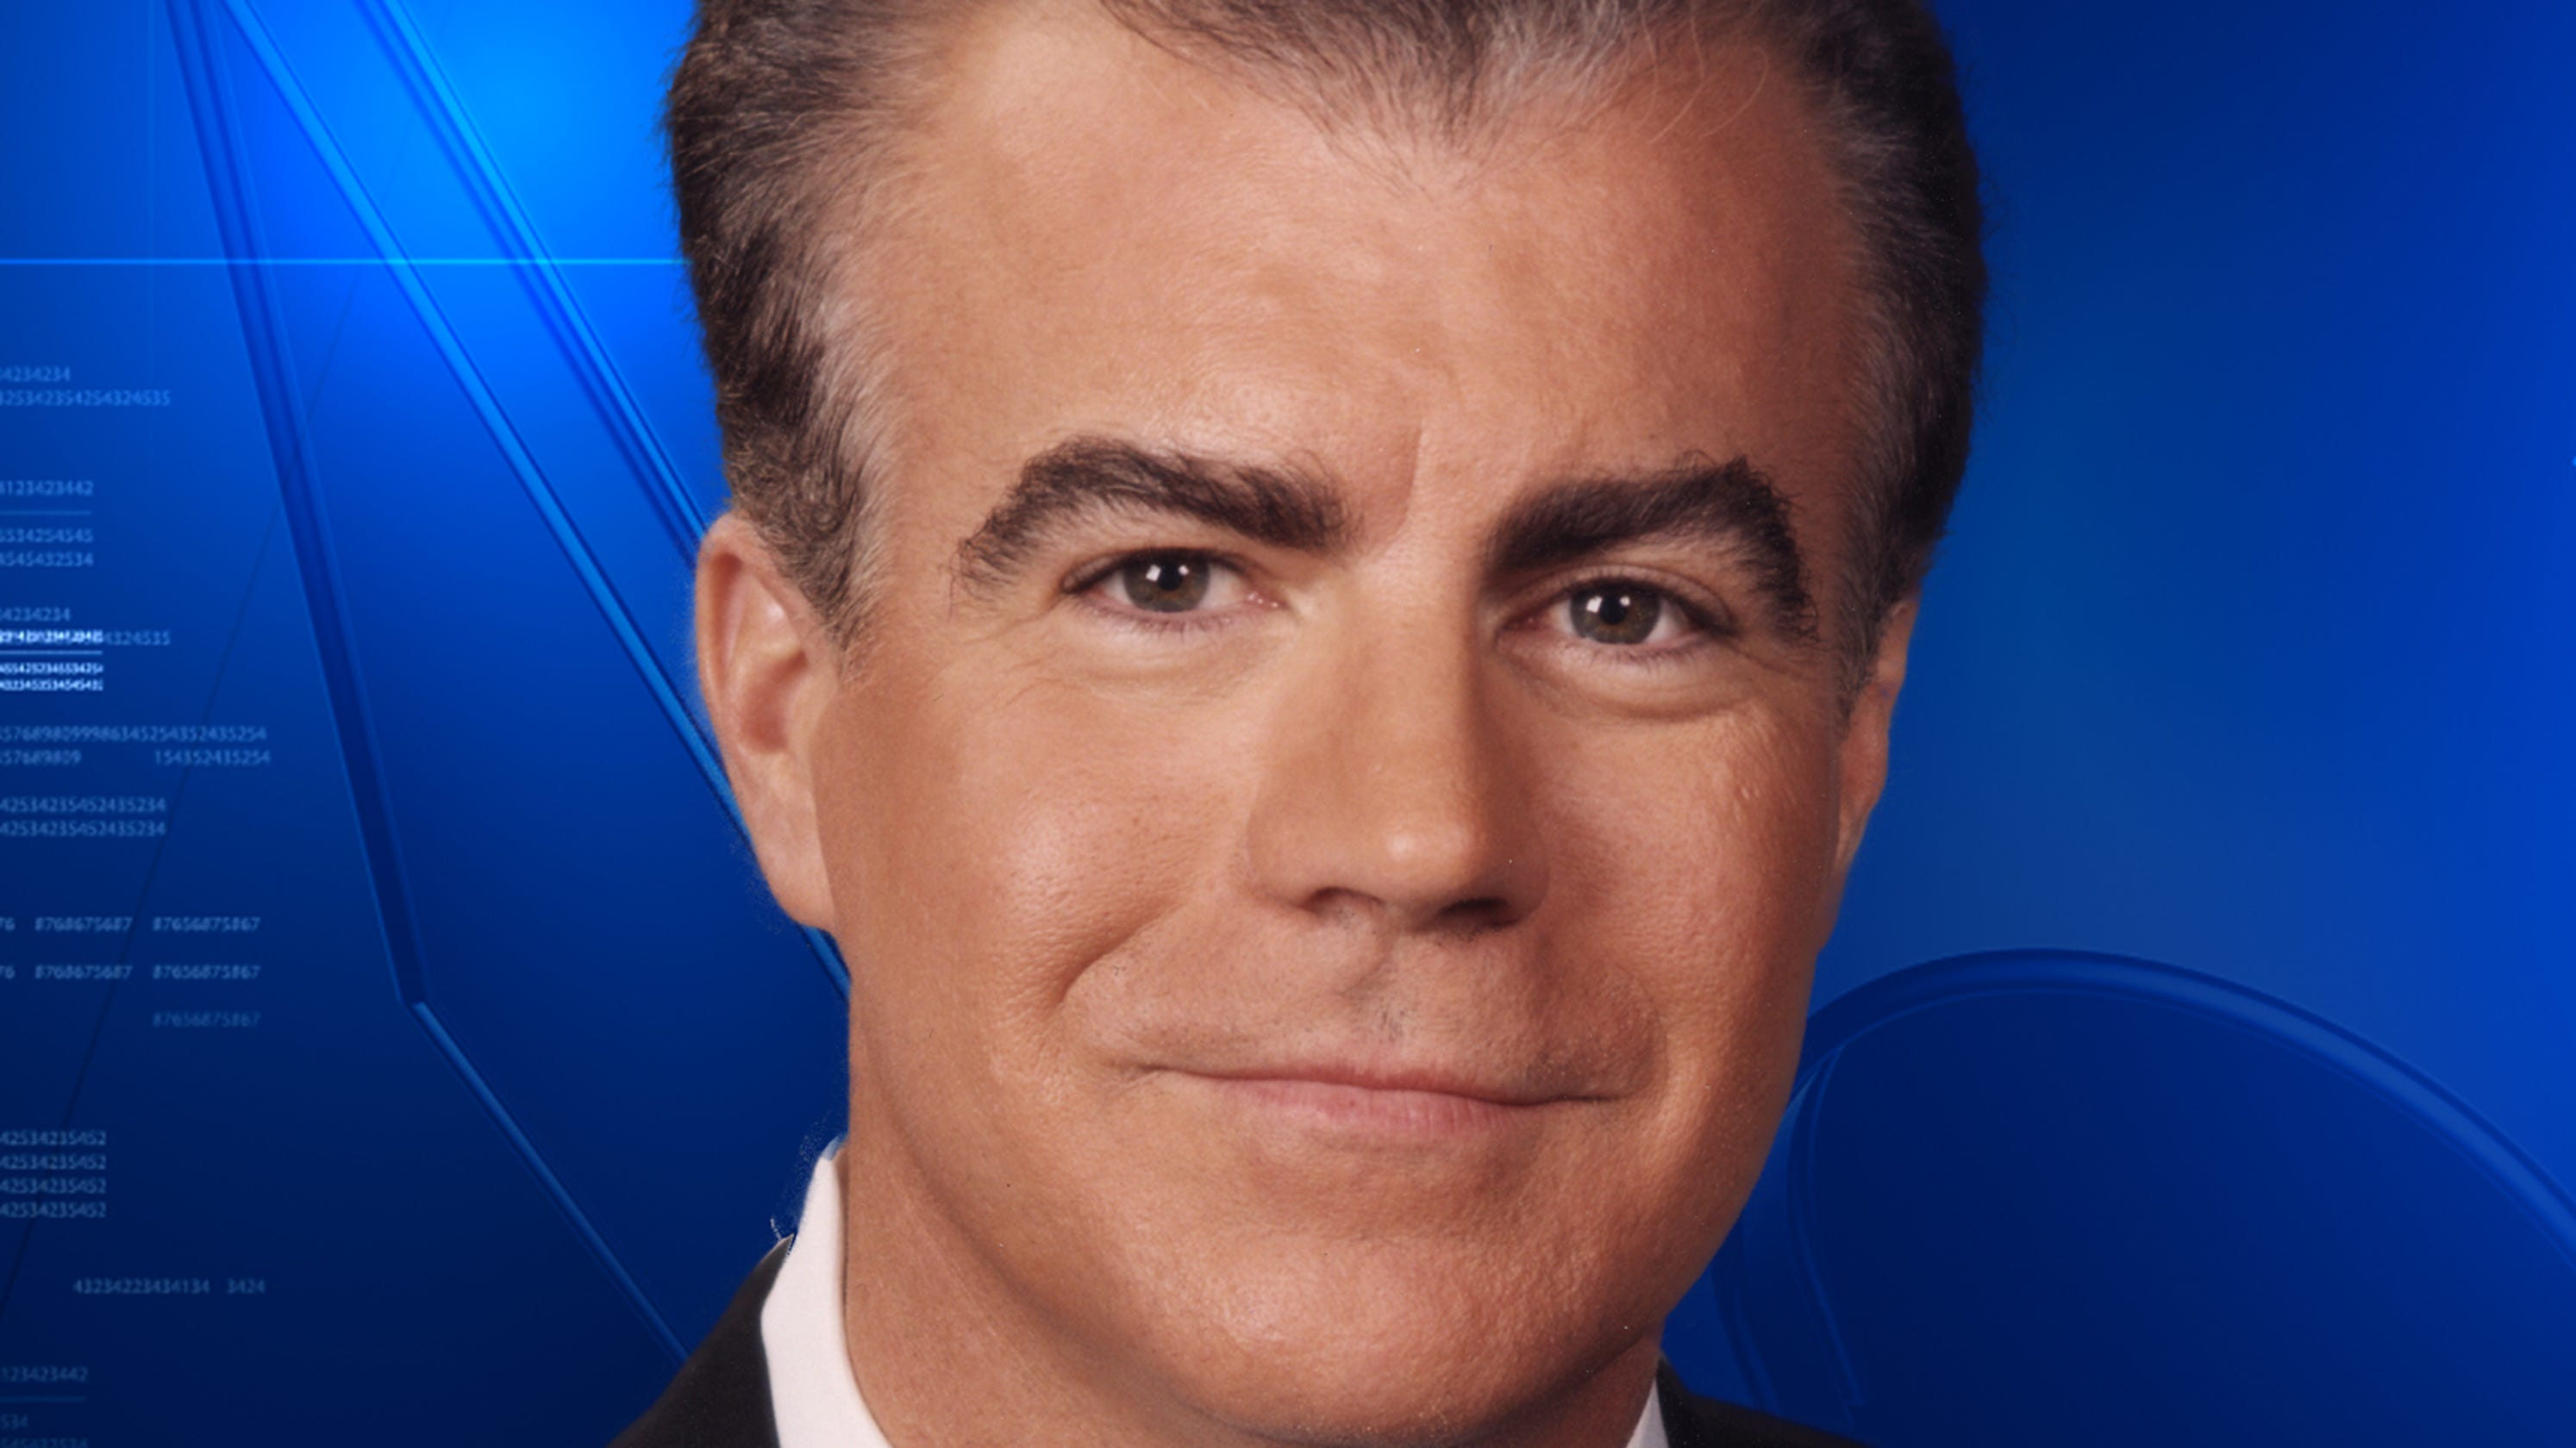 WKRC Local 12 Rob Braun says he doesn't fit with Sinclair News model